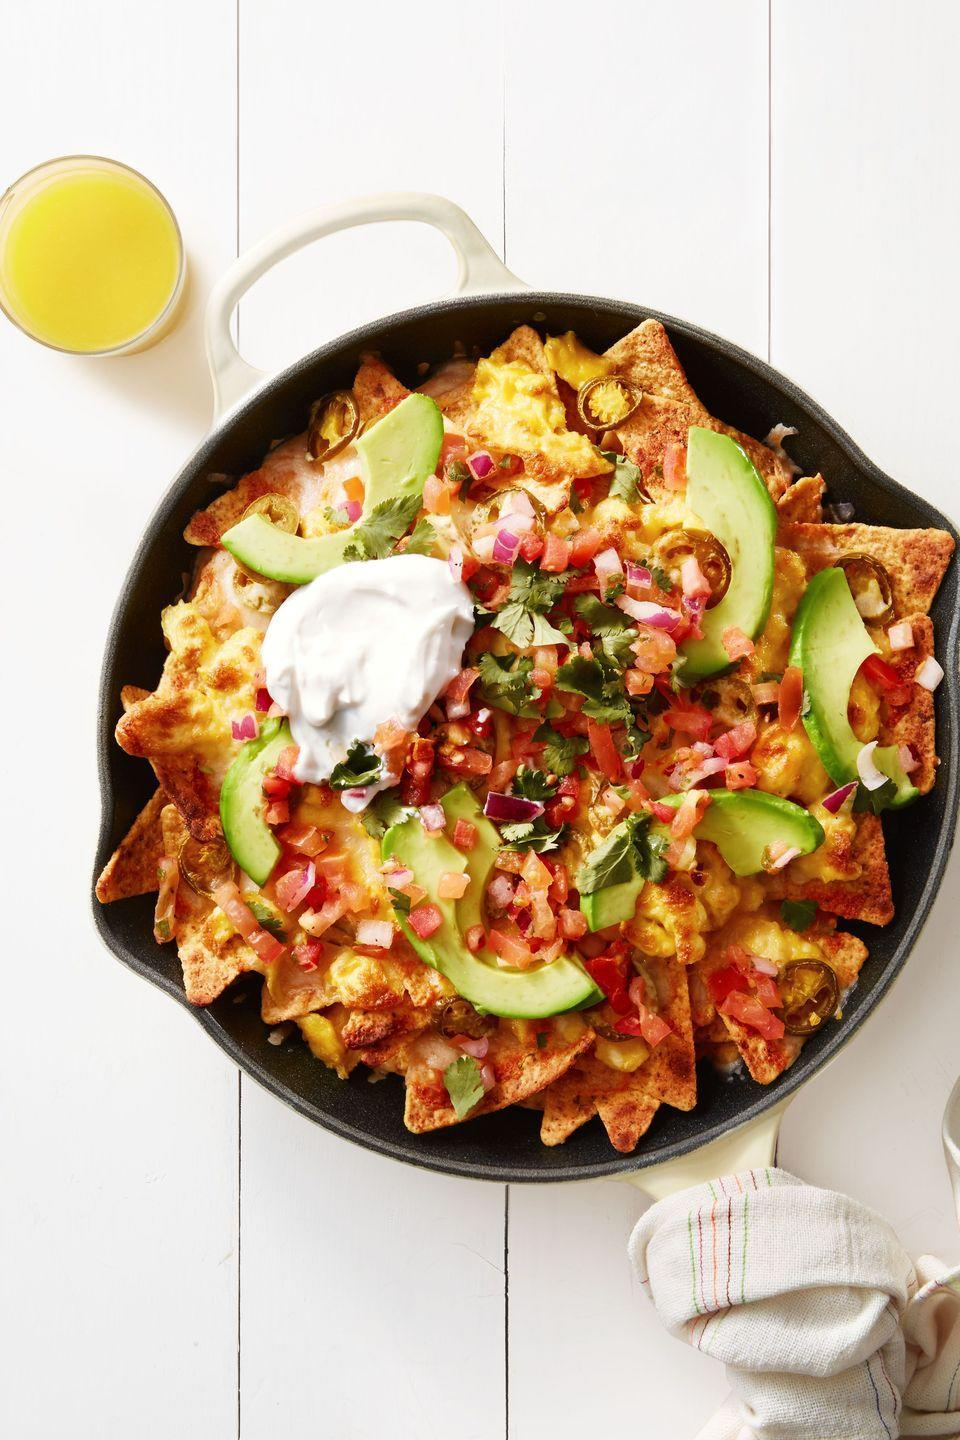 """<p>You really don't need an excuse to eat nachos for breakfast, but here it is!</p><p><a href=""""https://www.goodhousekeeping.com/food-recipes/a39354/mexican-breakfast-chilaquiles-recipe/"""" rel=""""nofollow noopener"""" target=""""_blank"""" data-ylk=""""slk:Get the recipe for Mexican Breakfast Chilaquiles »"""" class=""""link rapid-noclick-resp""""><em>Get the recipe for Mexican Breakfast Chilaquiles »</em></a></p>"""